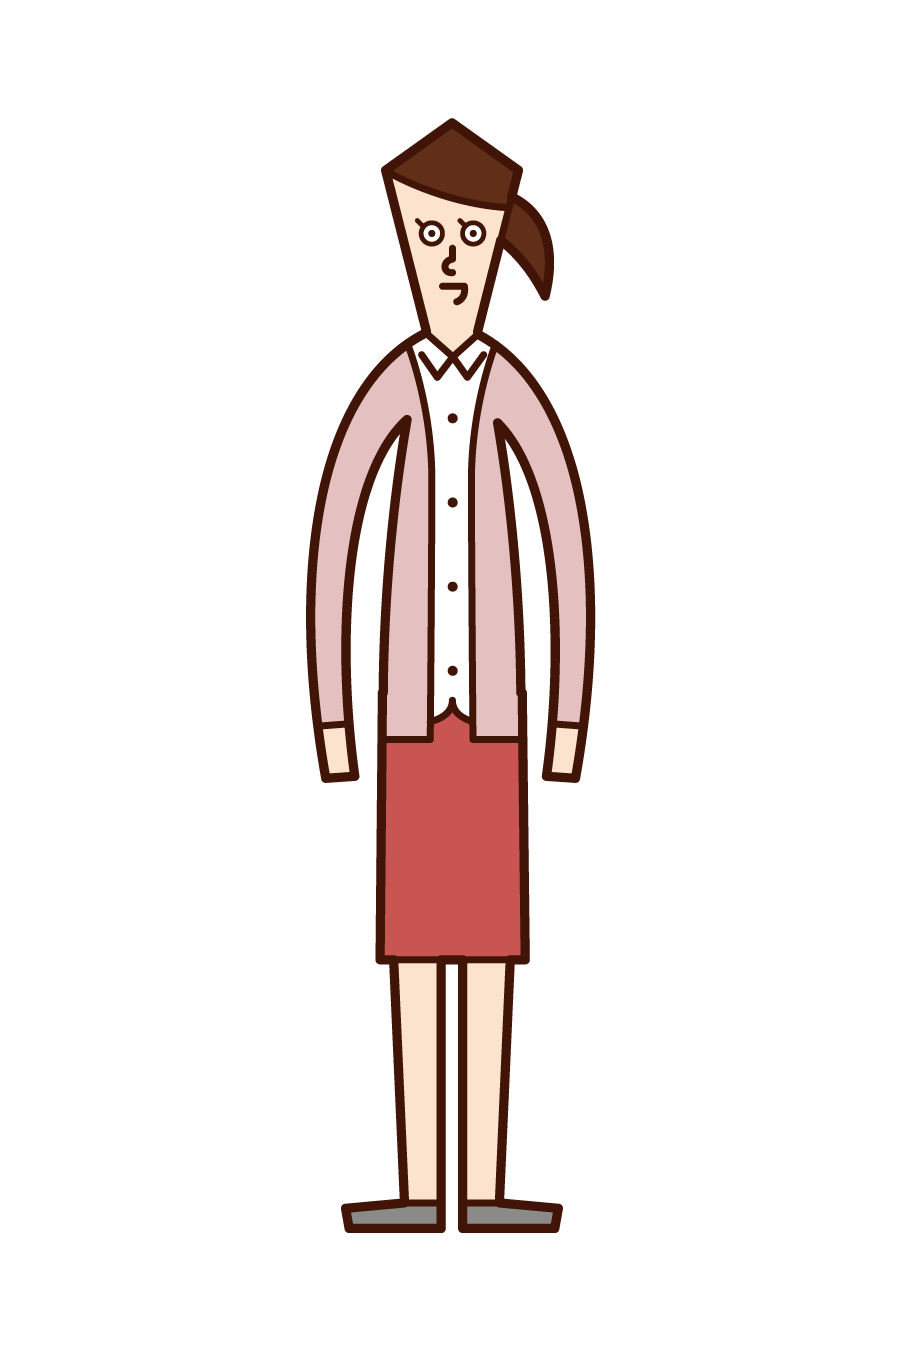 Illustration of a woman wearing a cardigan